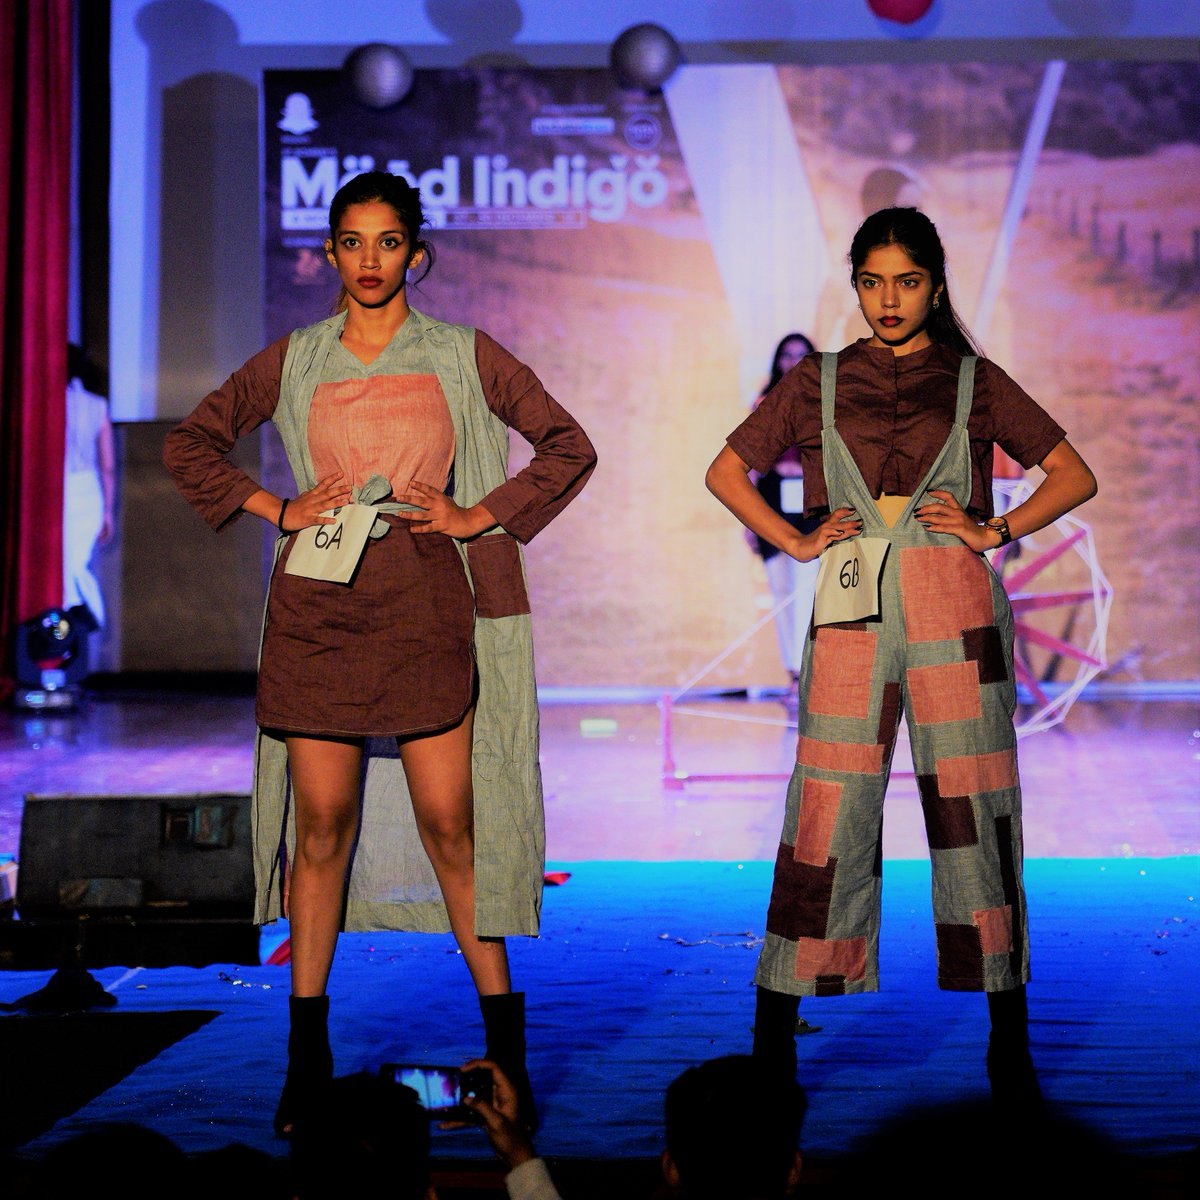 Khadi India On Twitter Khadi Embraced Aspiring Designers And Models From Across The Country Who Brought Meaning To The Theme Reverie To Reality At The Vogue Fashion Design Competition Held At Iitb Moodi